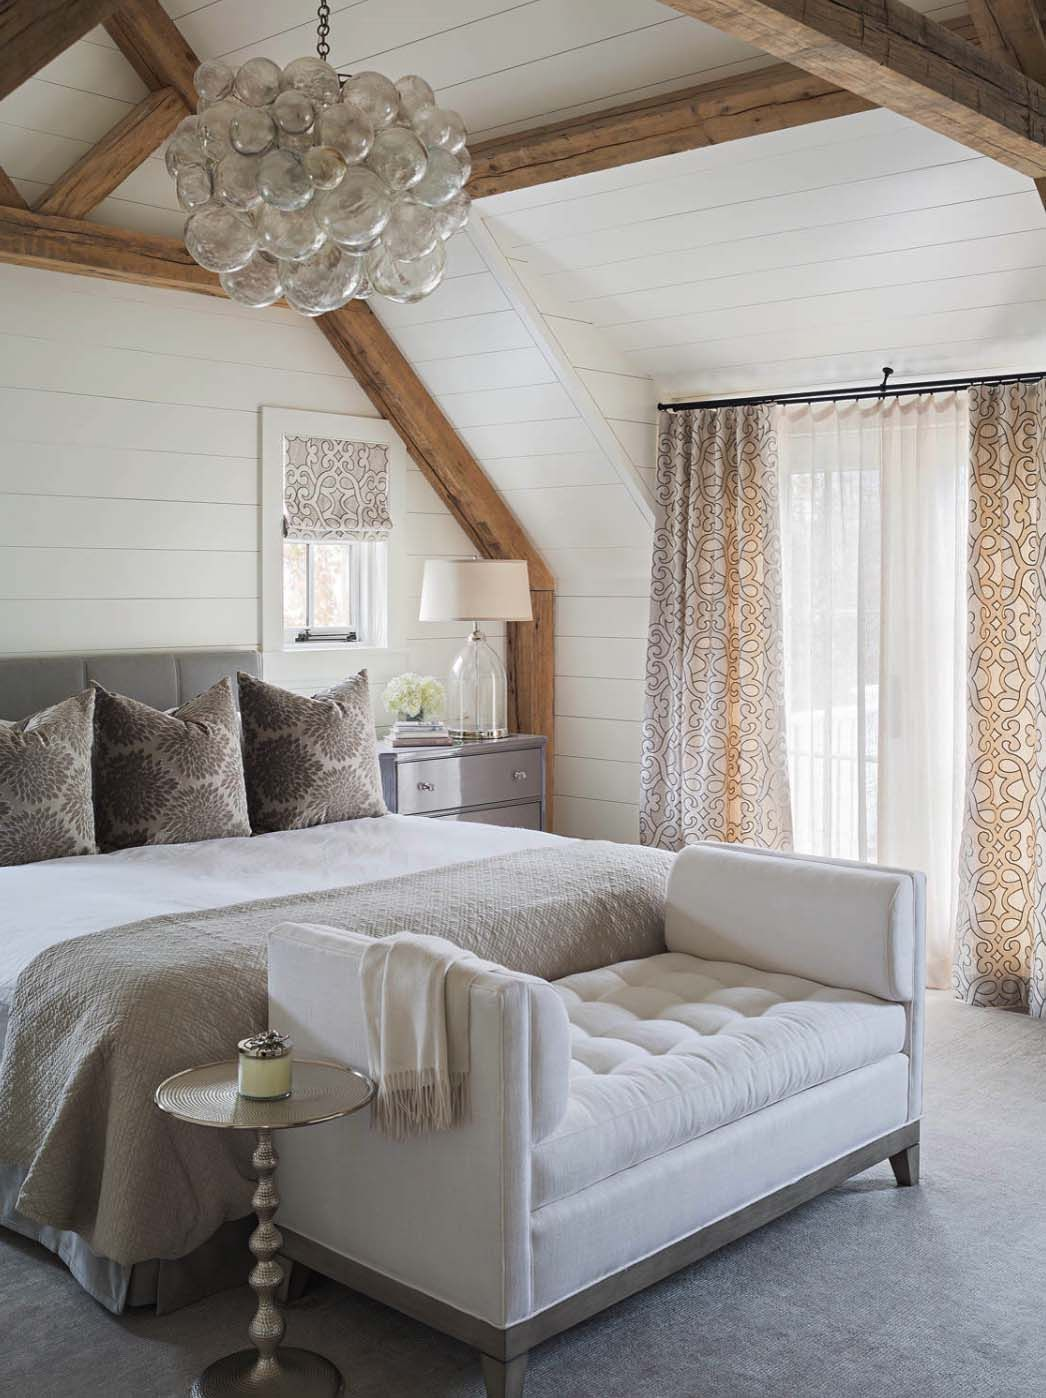 Bedroom Lighting Ideas For A Dreamy Master Bedroom 04 bedroom lighting Bedroom Lighting Ideas For A Dreamy Master Bedroom Bedroom Lighting Ideas For A Dreamy Master Bedroom 04